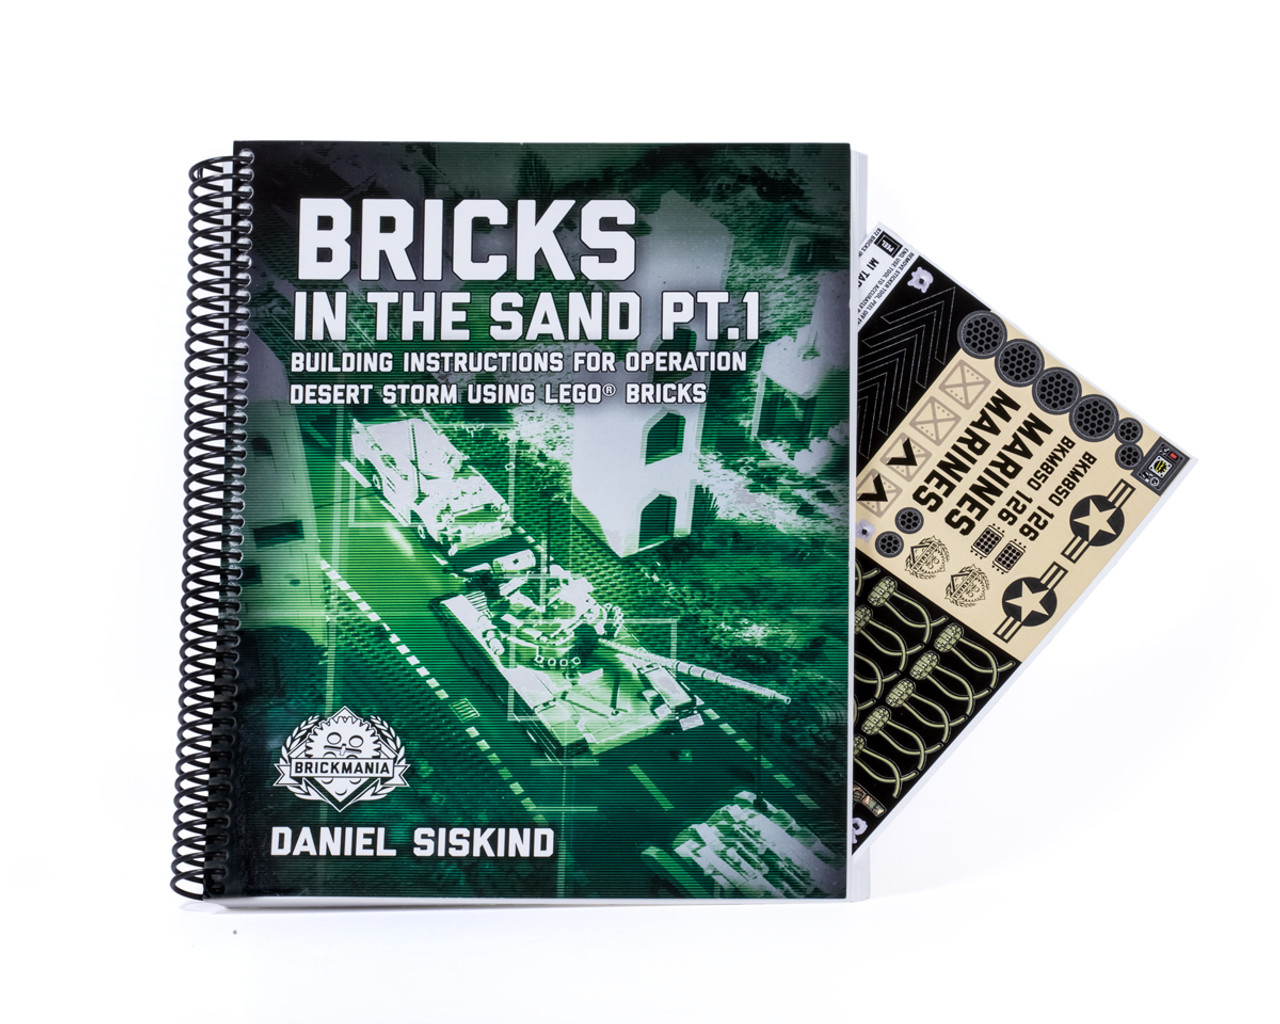 Bricks in the Sand Pt. 1: Building Instructions for Operation Desert Storm Using LEGO® Bricks